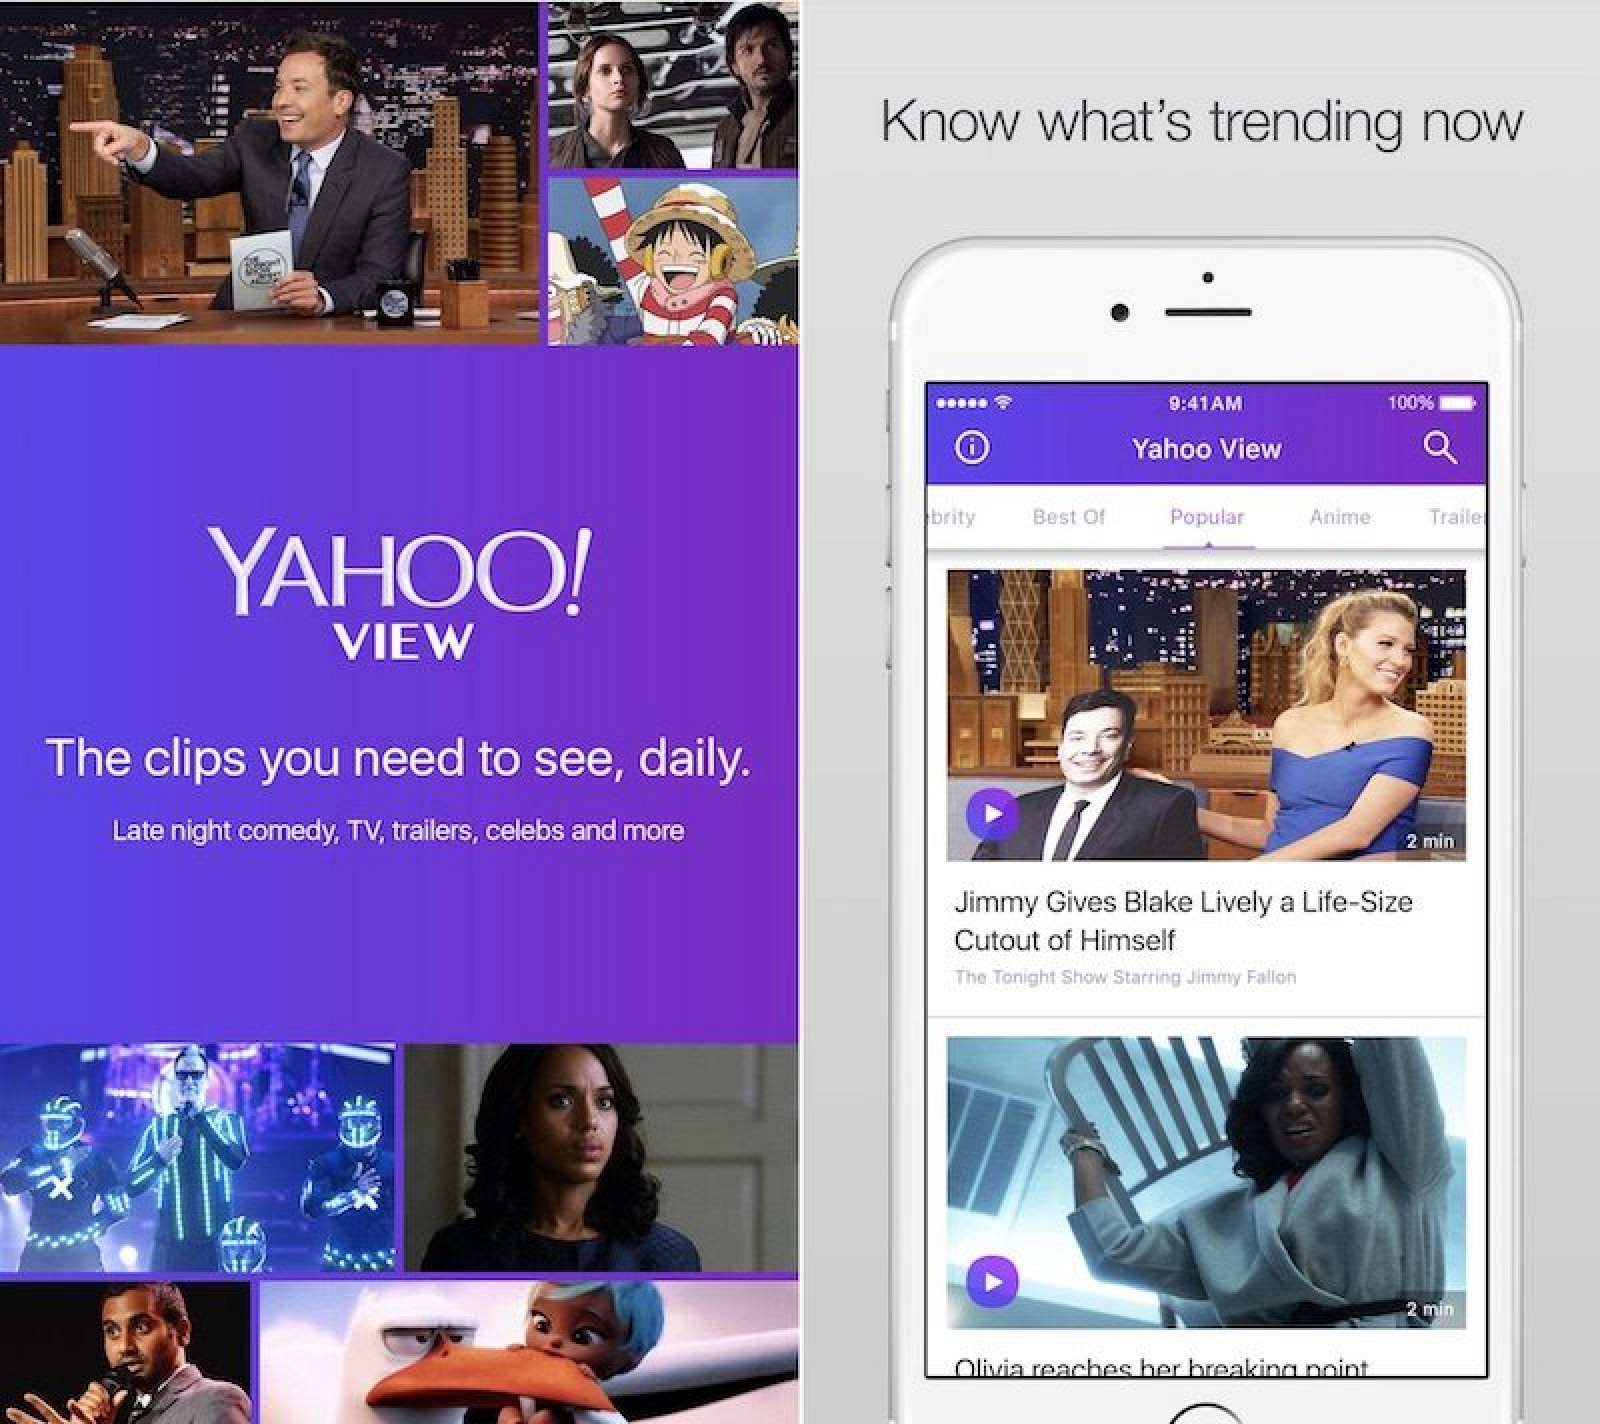 Yahoo View App Debuts With Hulu Content Amid Massive Data Breach